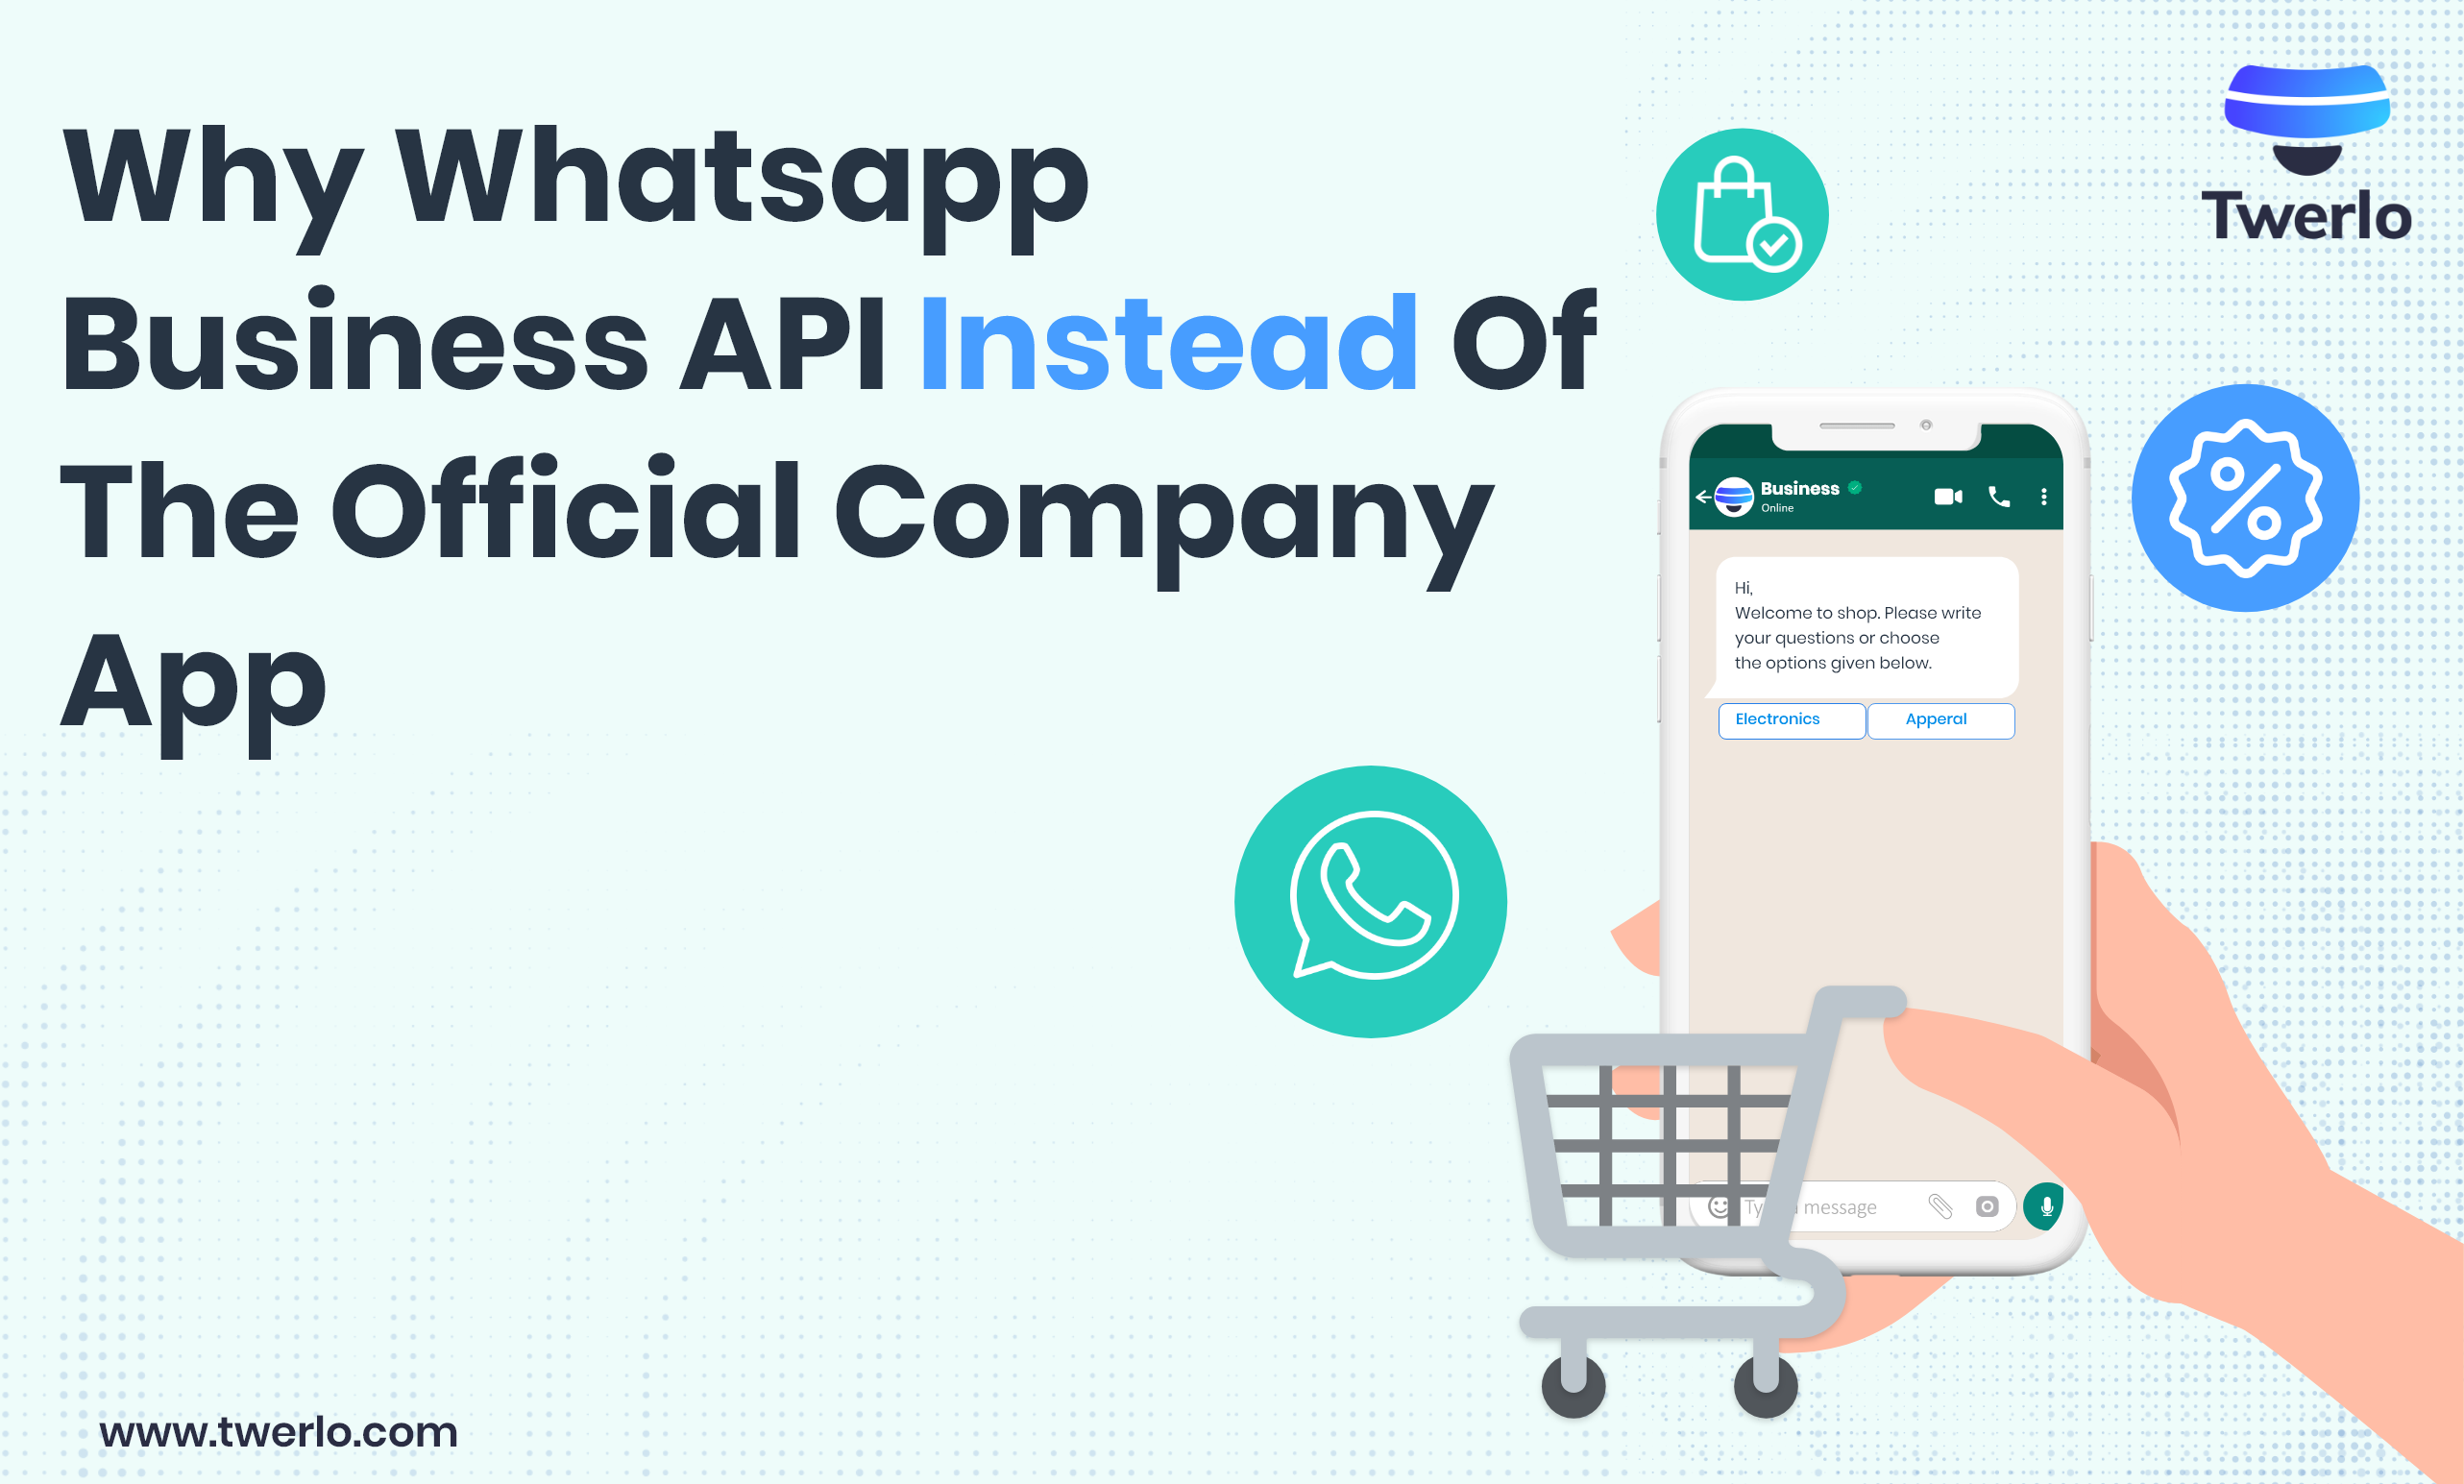 Why WhatsApp Business API instead of the official company app